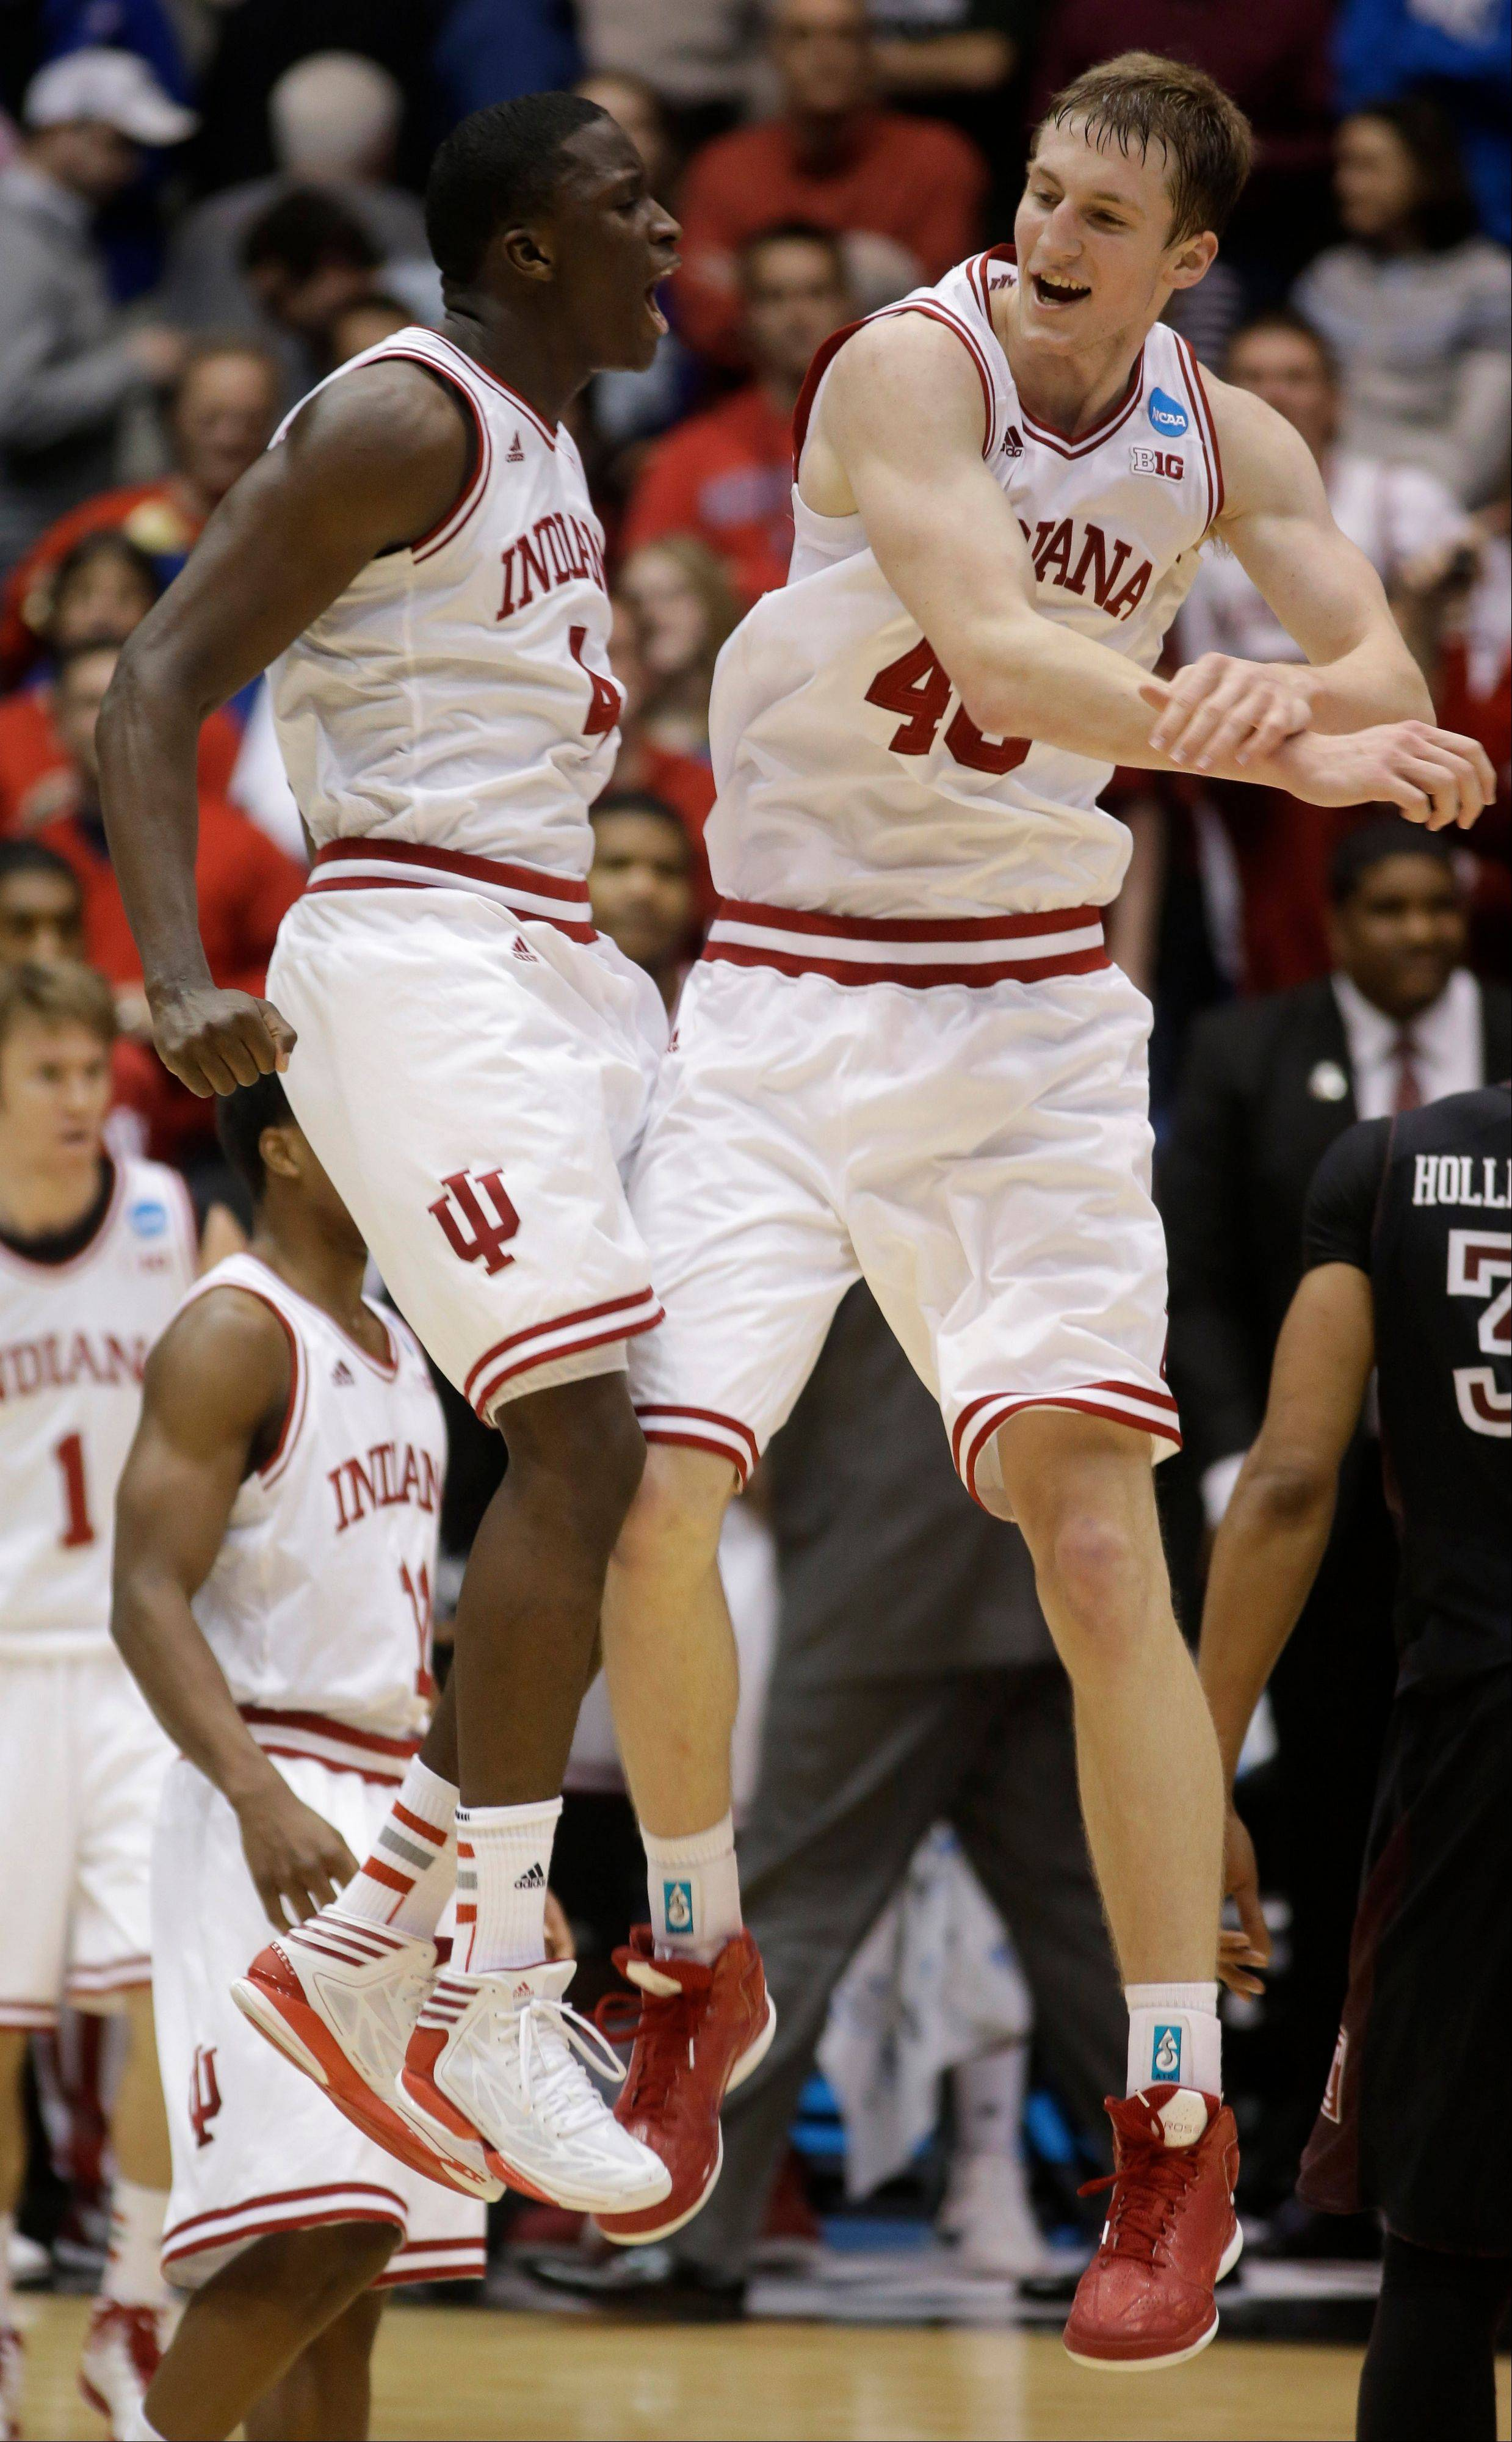 Indiana holds off Temple to reach Sweet 16